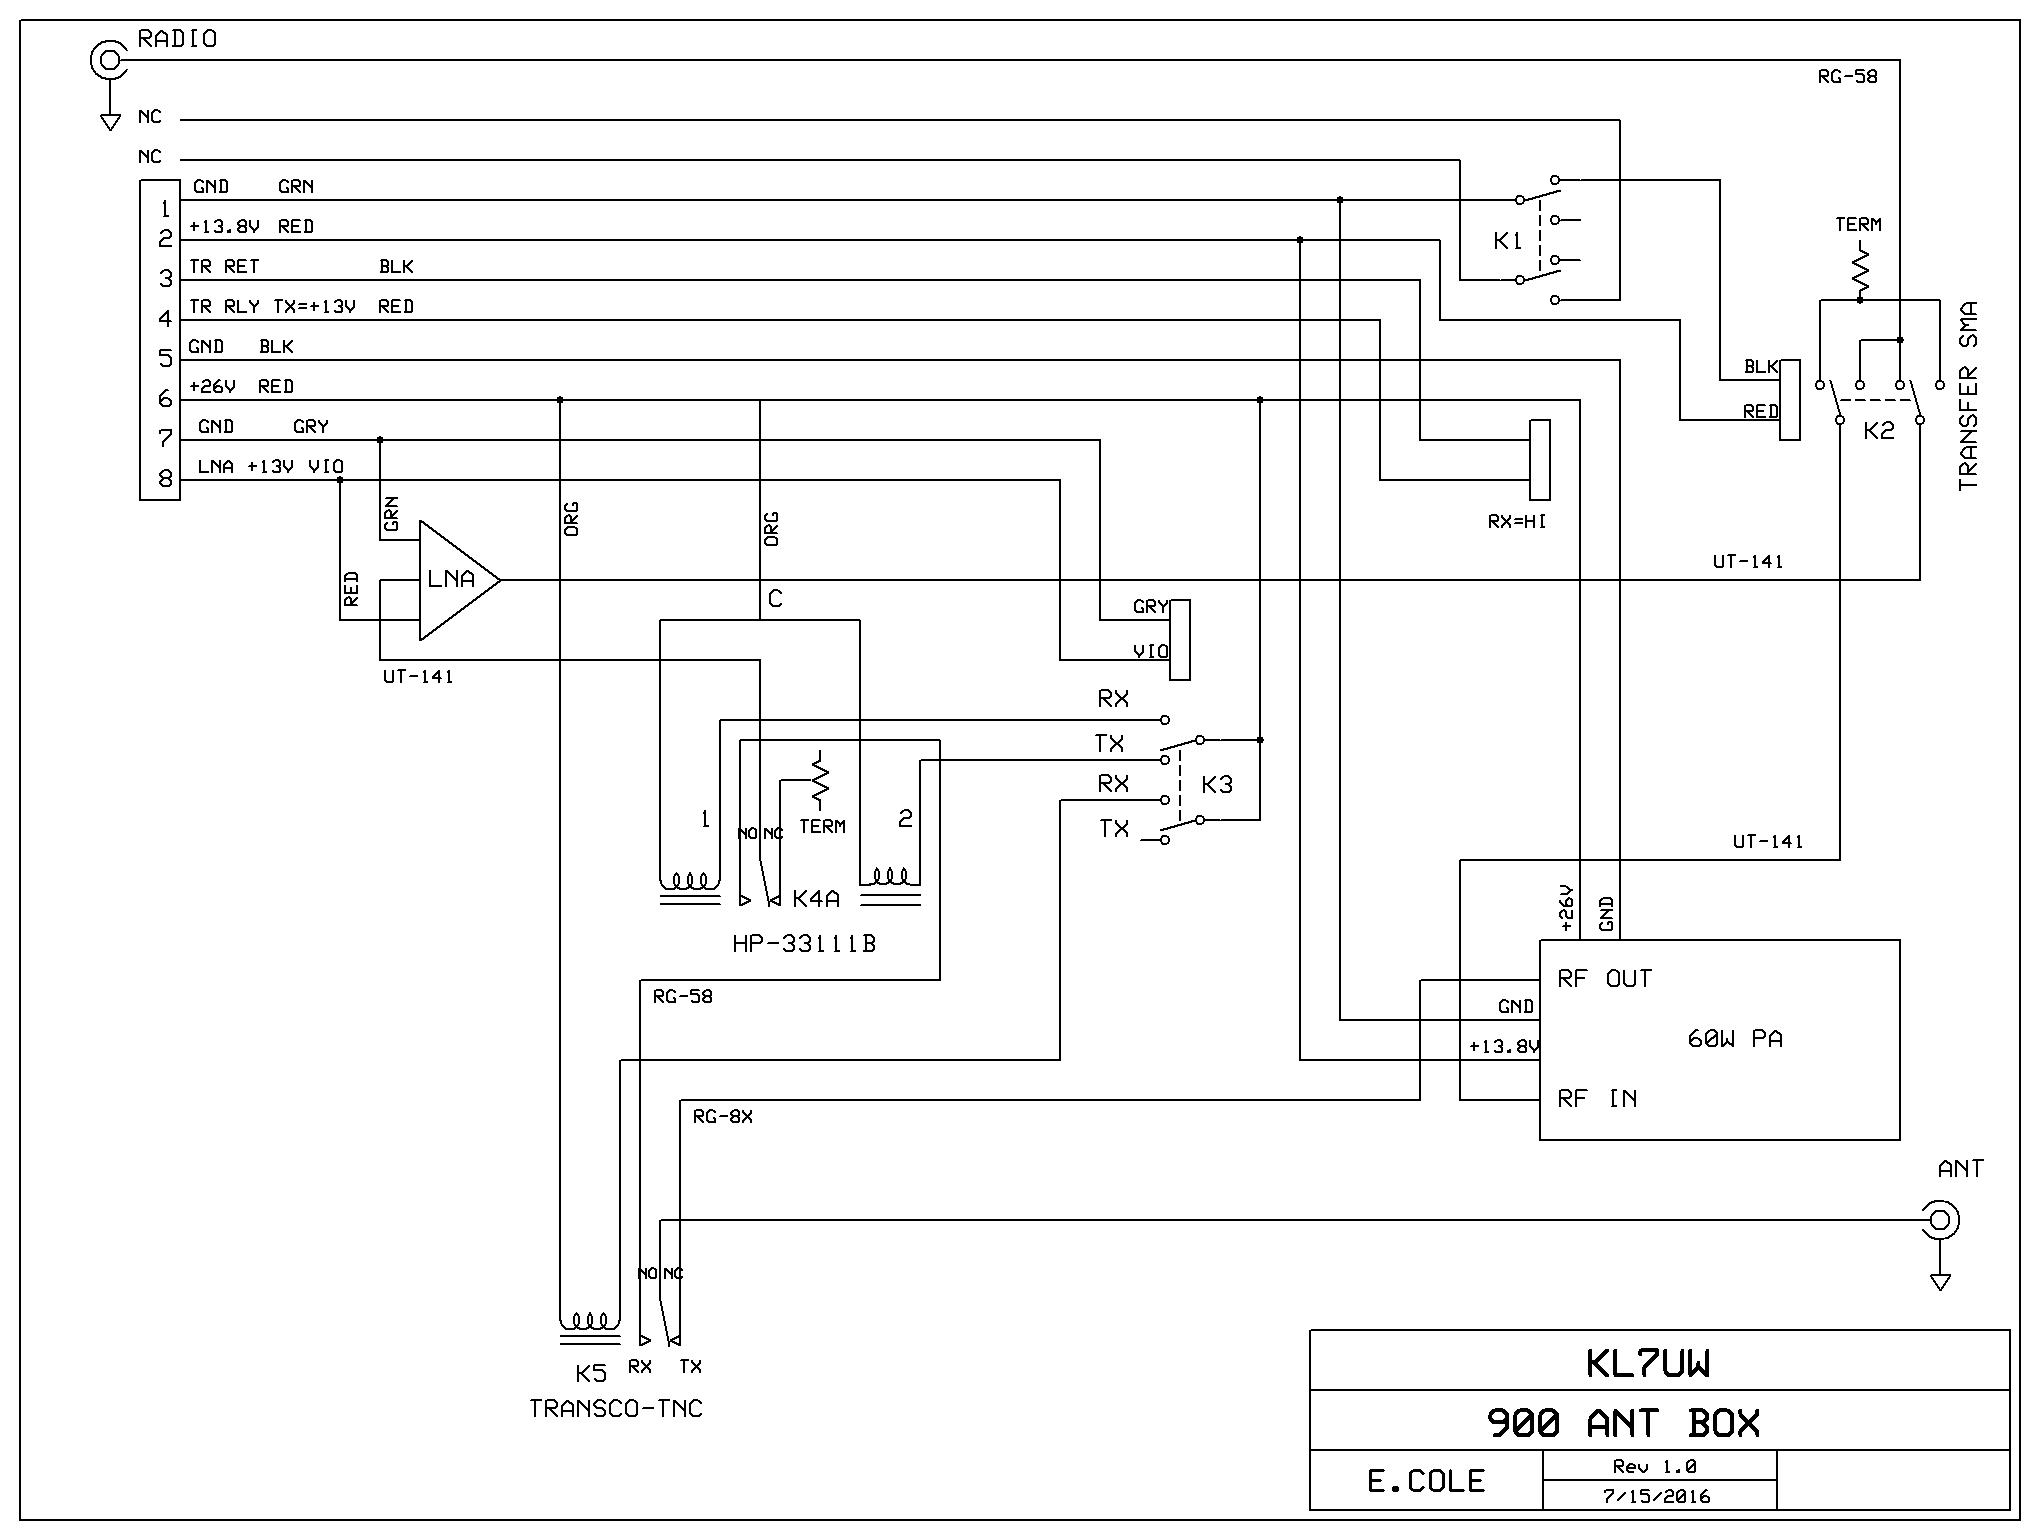 2 Meter Eme Page H 264 Block Diagram Tower Box Schematic Has Been Wired To Add A Narda Sem123n Relay For Switching Between 144 And 900 1296 Mhz Equipment